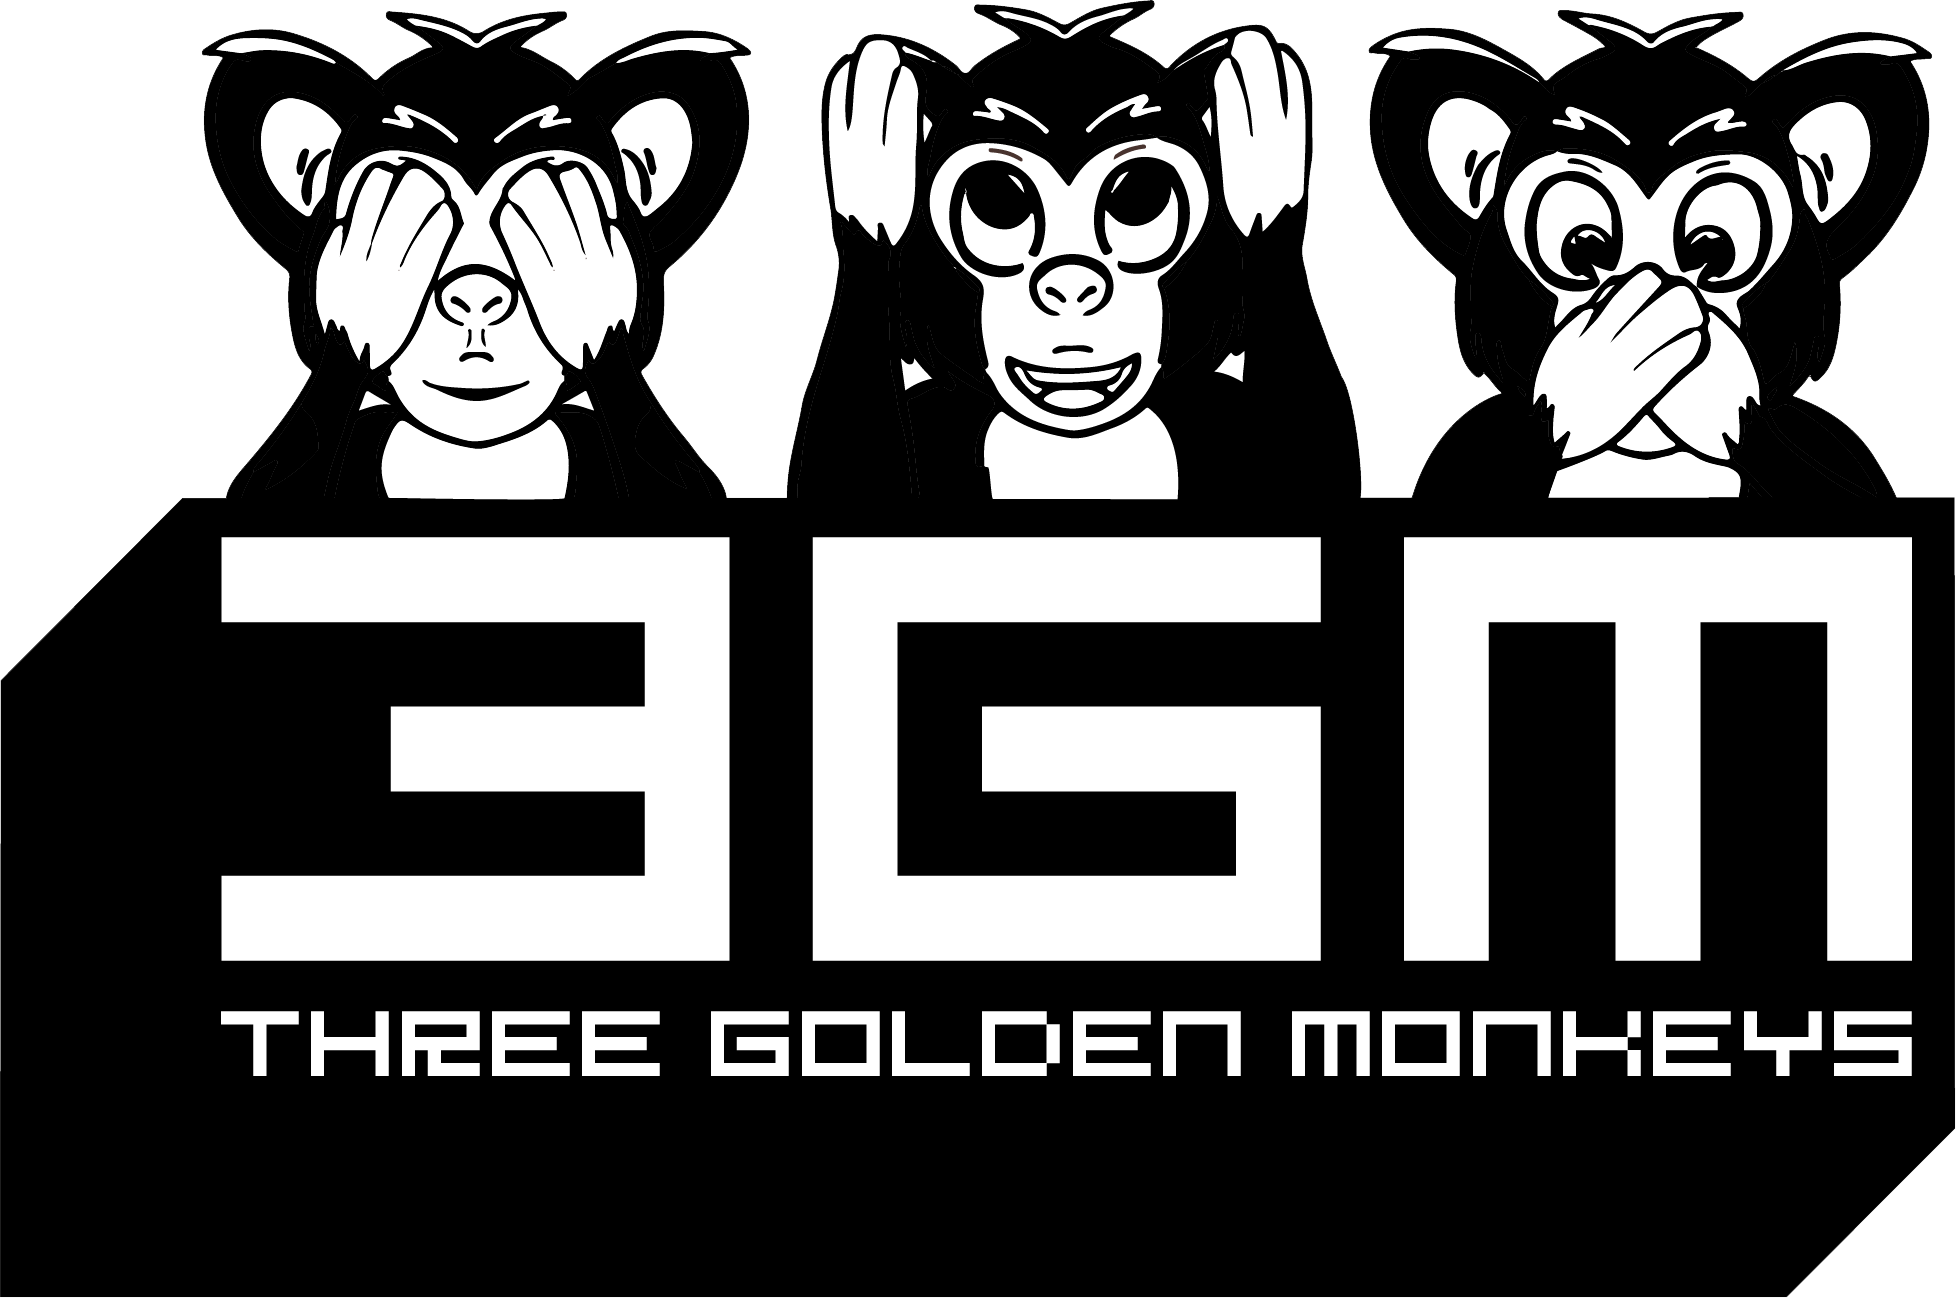 juegos de musica Archives - Three Golden Monkeys Lab